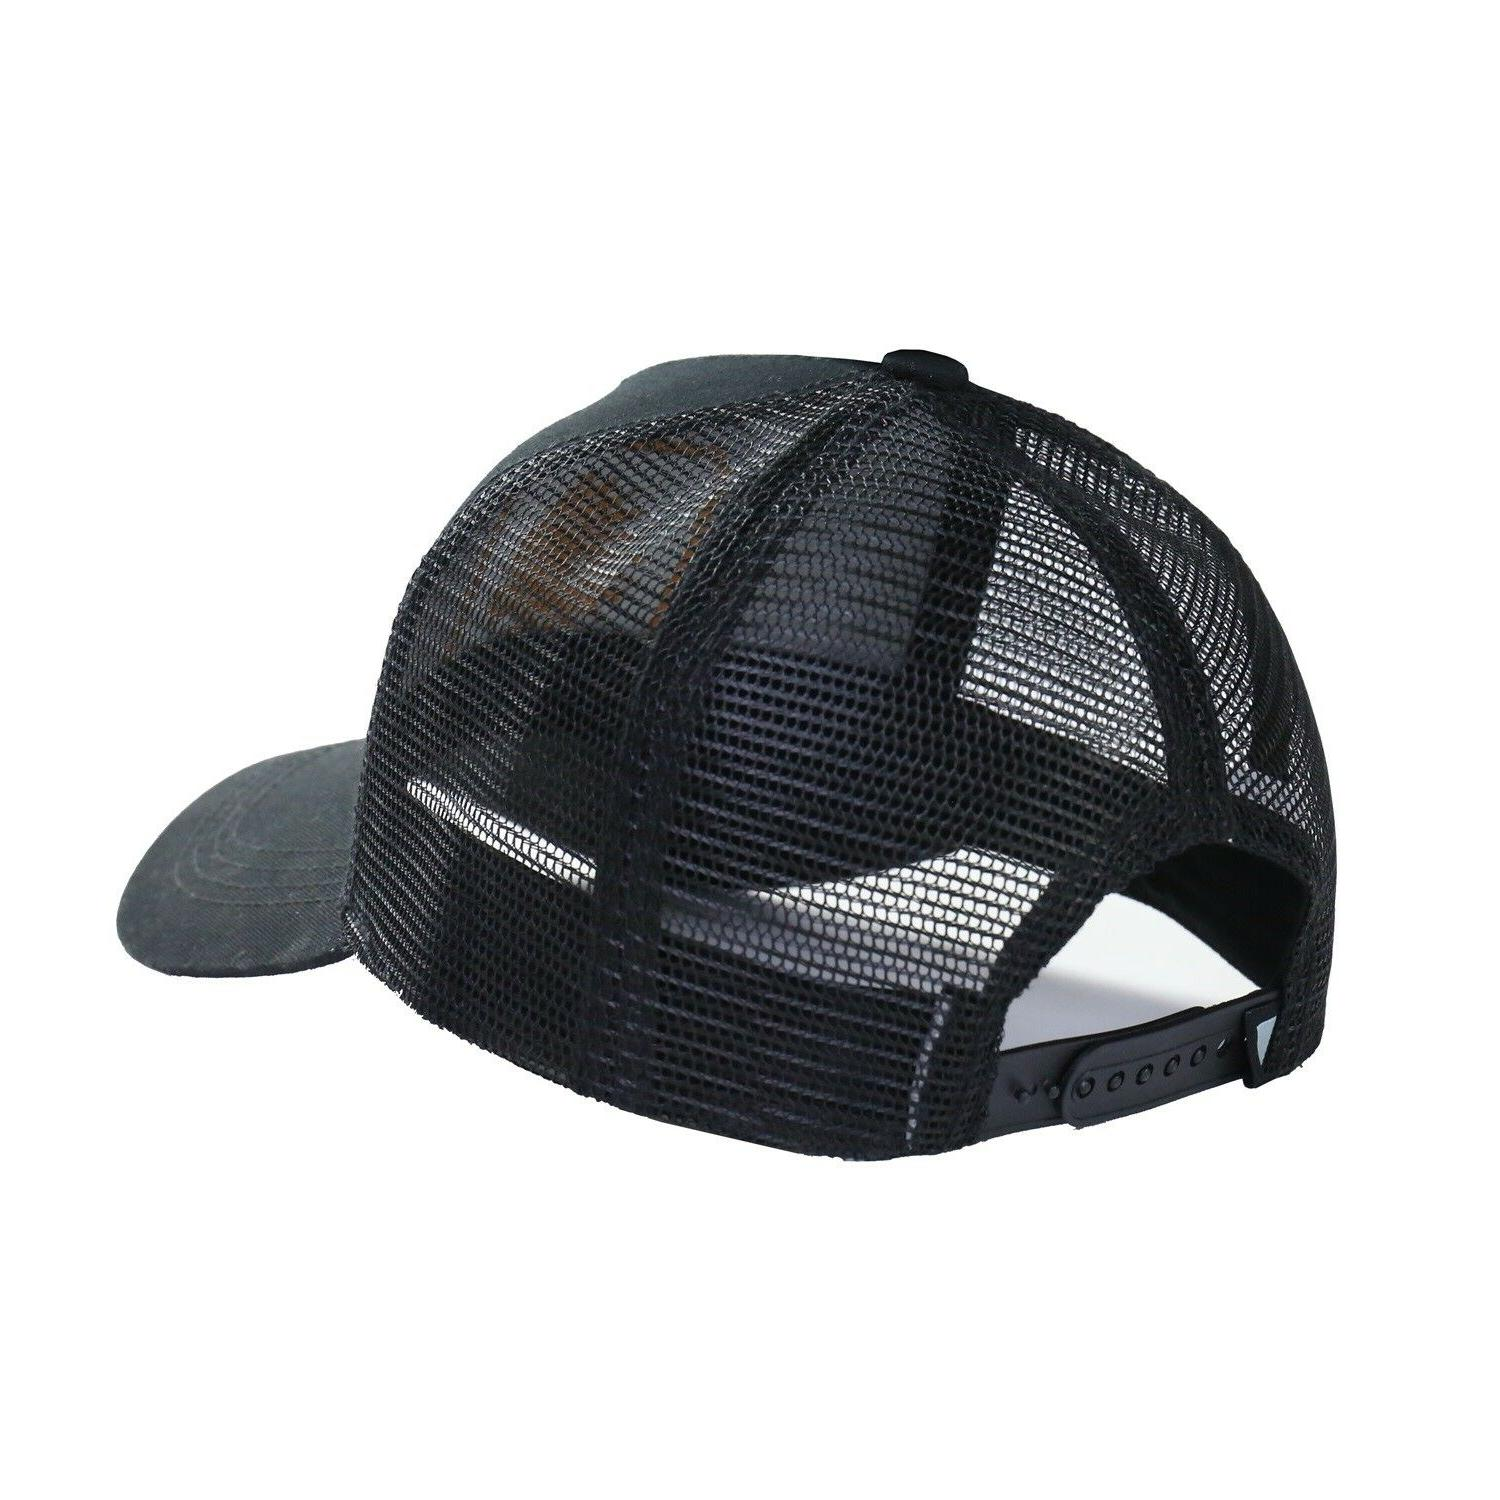 Men's Snapback Trucker Hat Baseball Cap Black